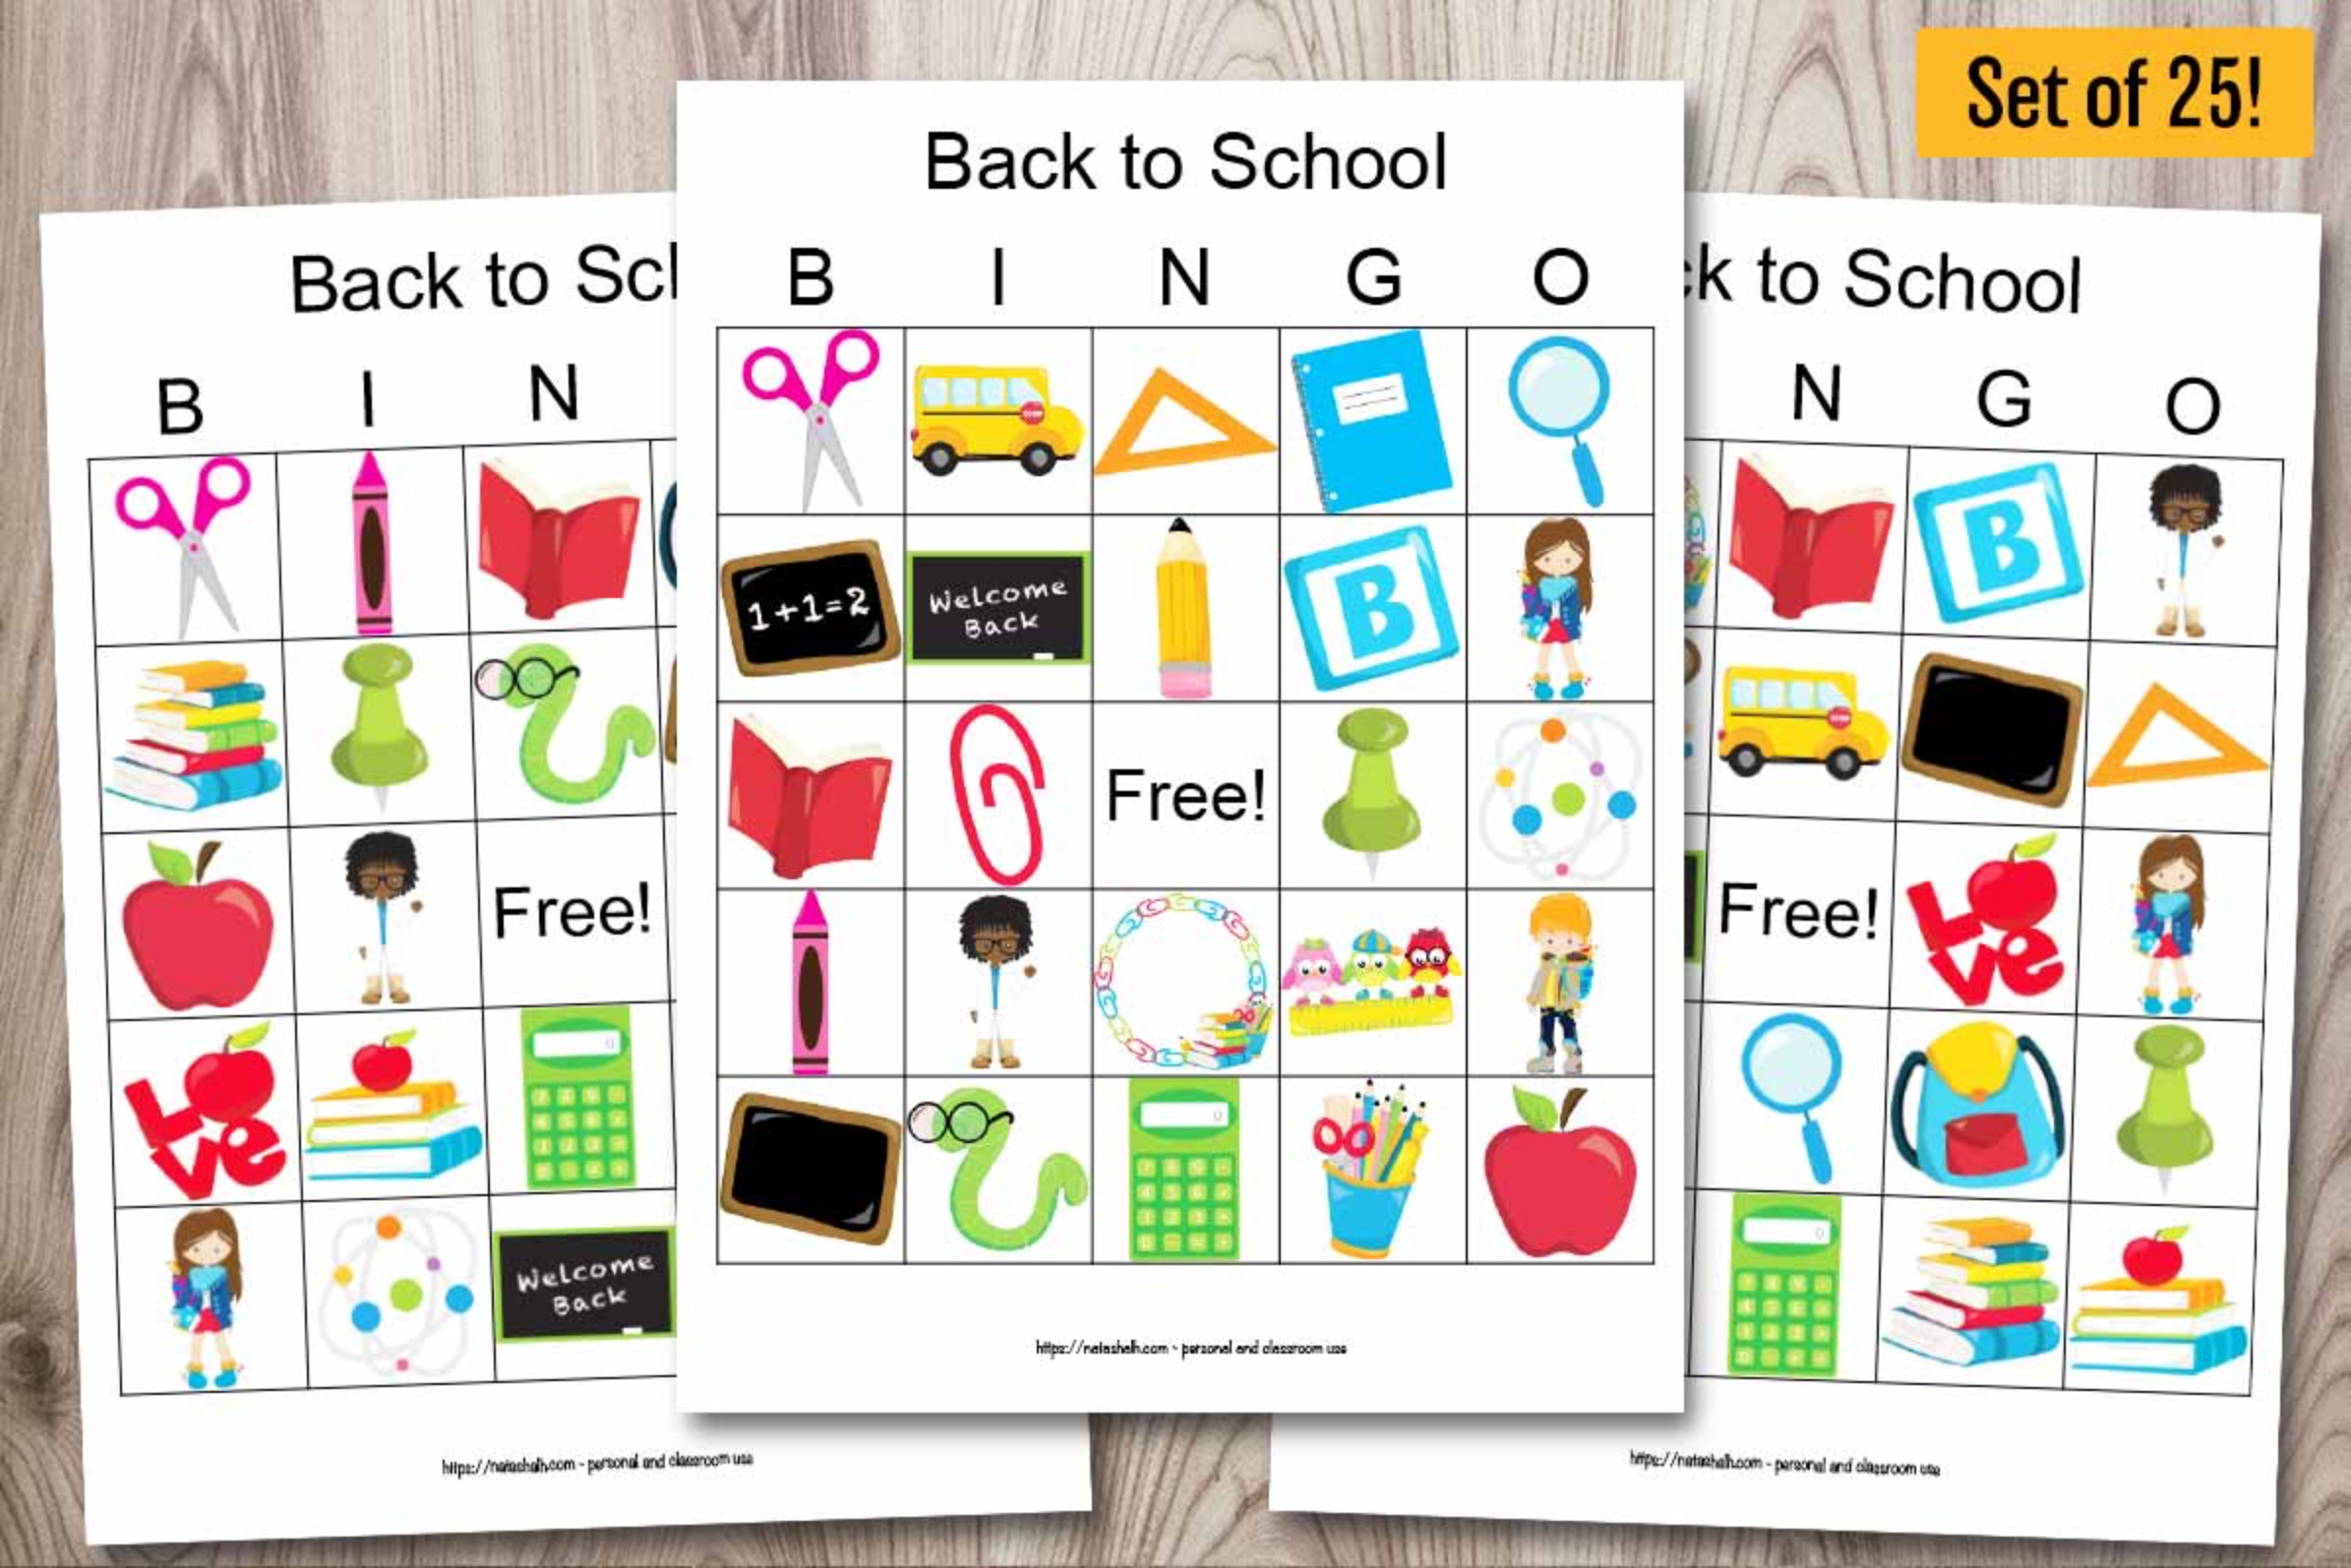 25 Back to School Bingo Cards - Classroom Set